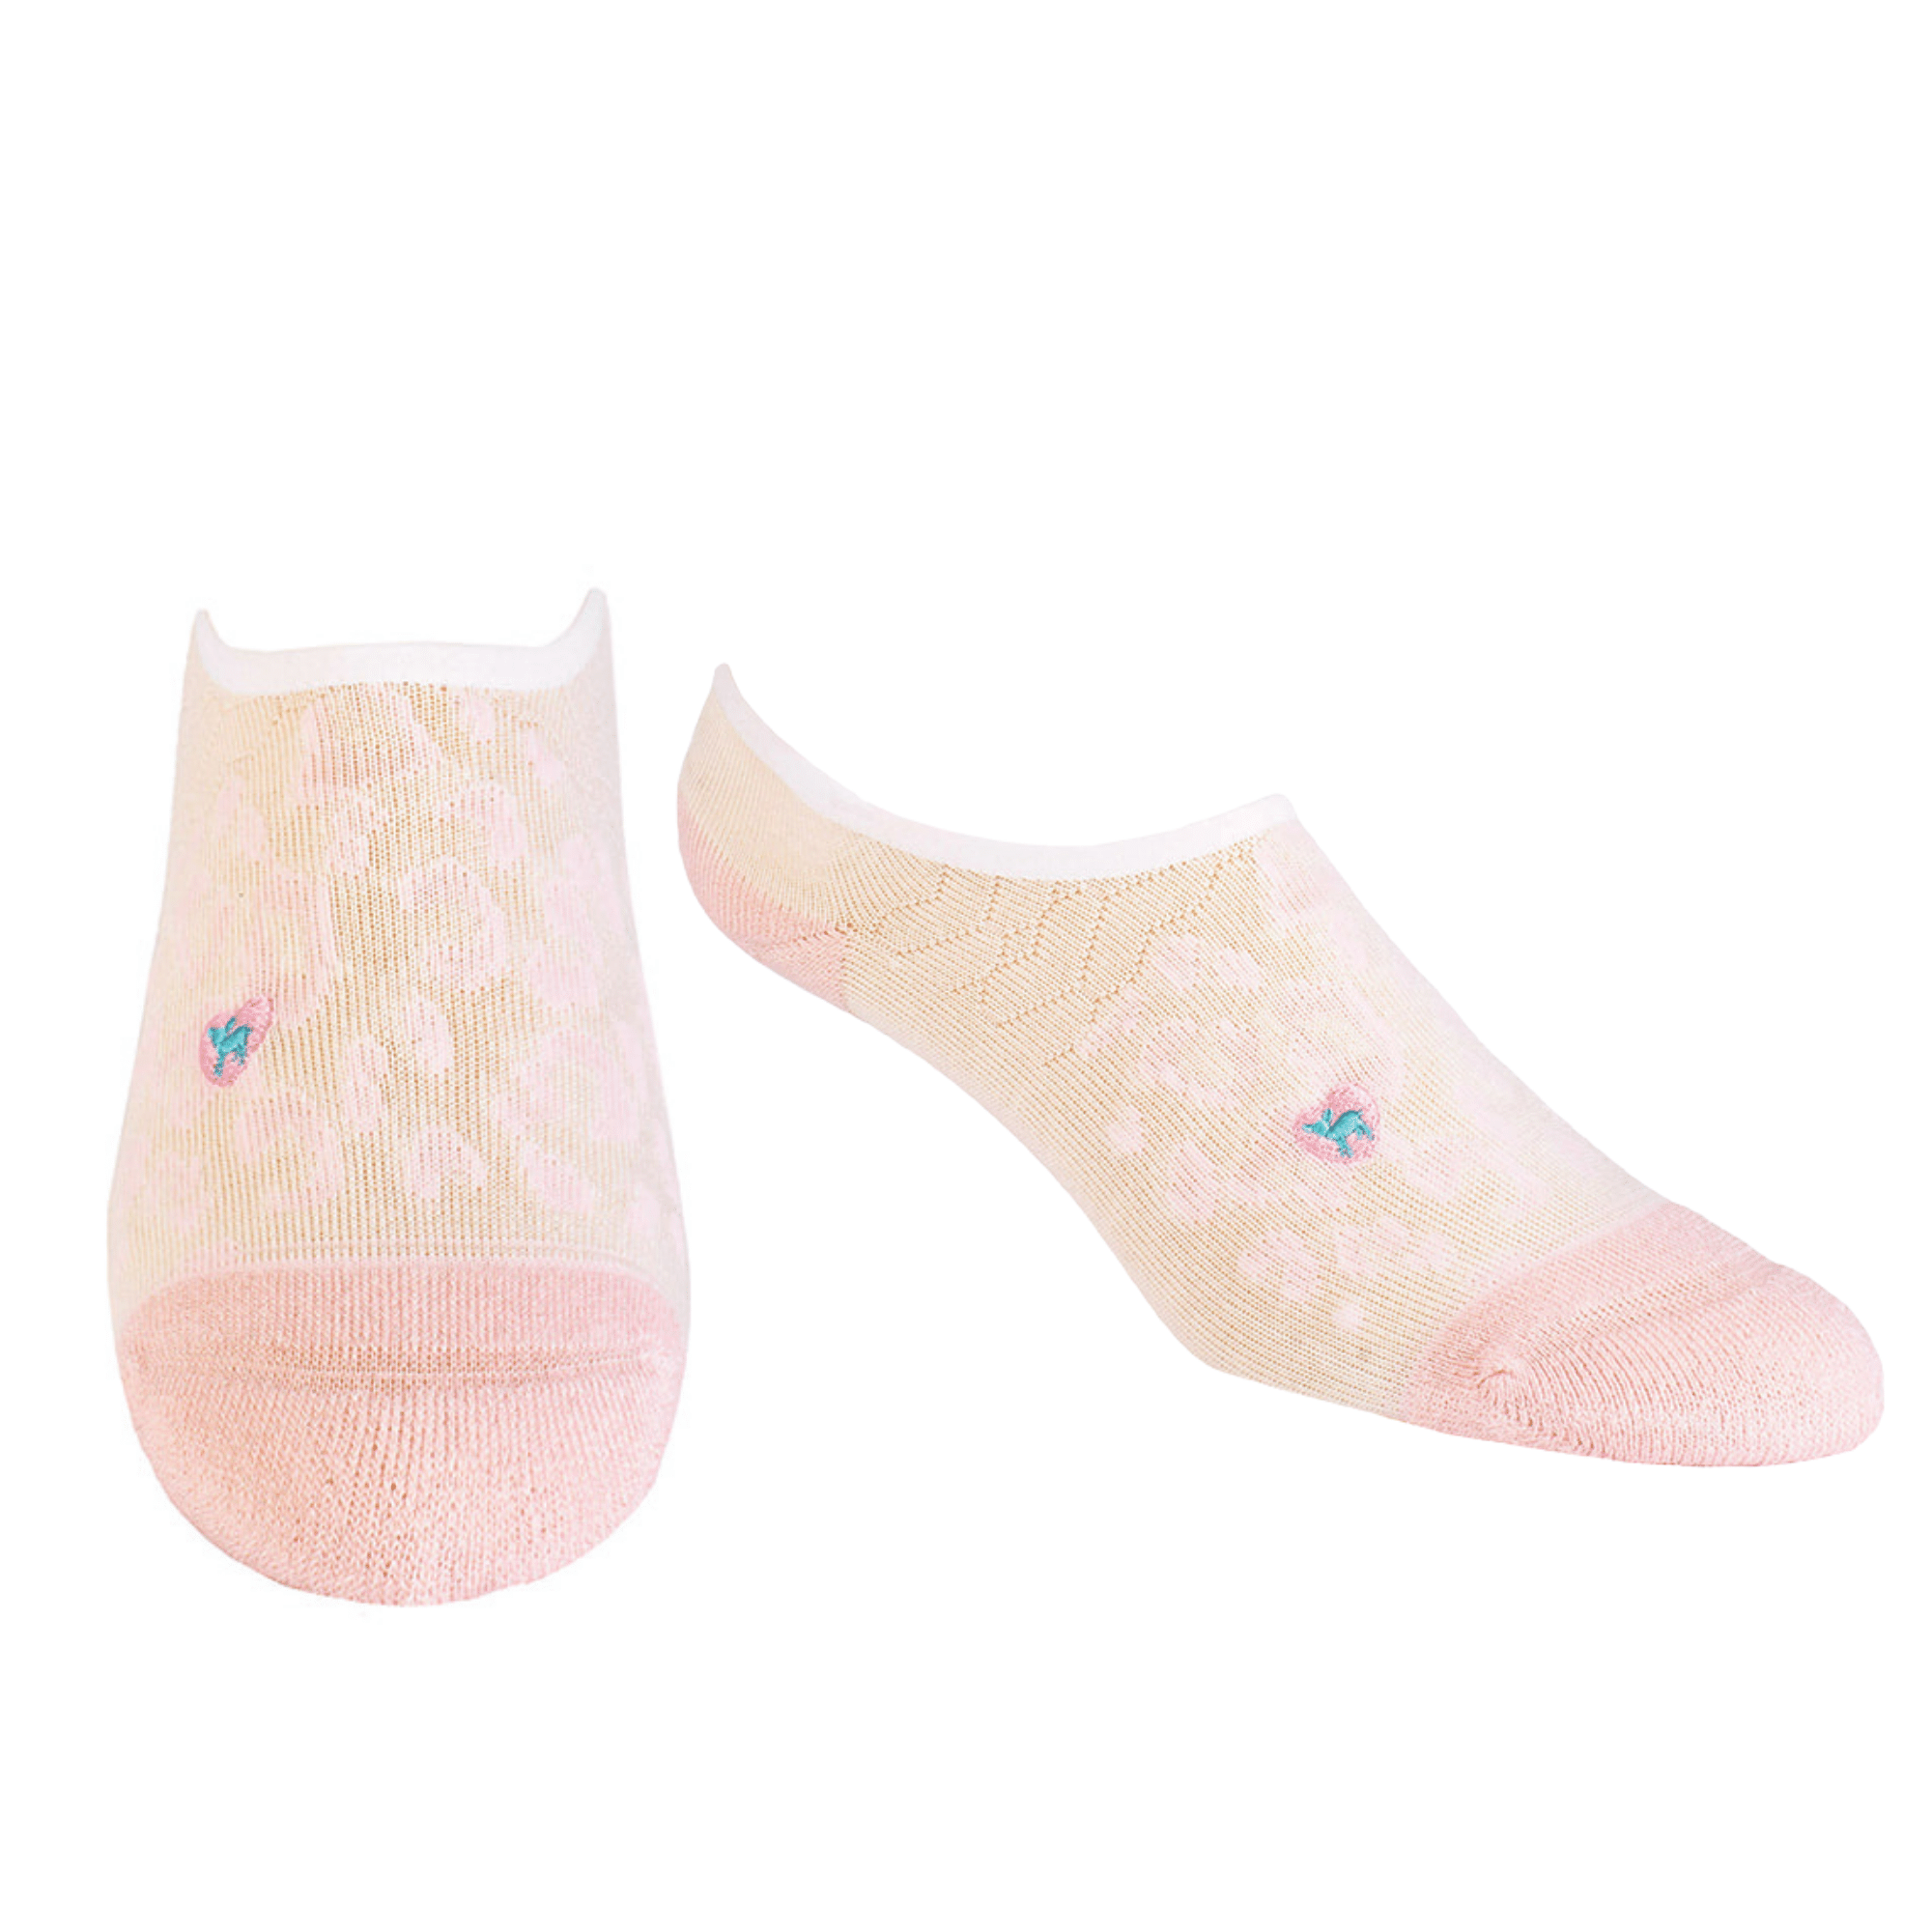 Bamboo Socks | No Fuss No-Show | Purrfectly Pink